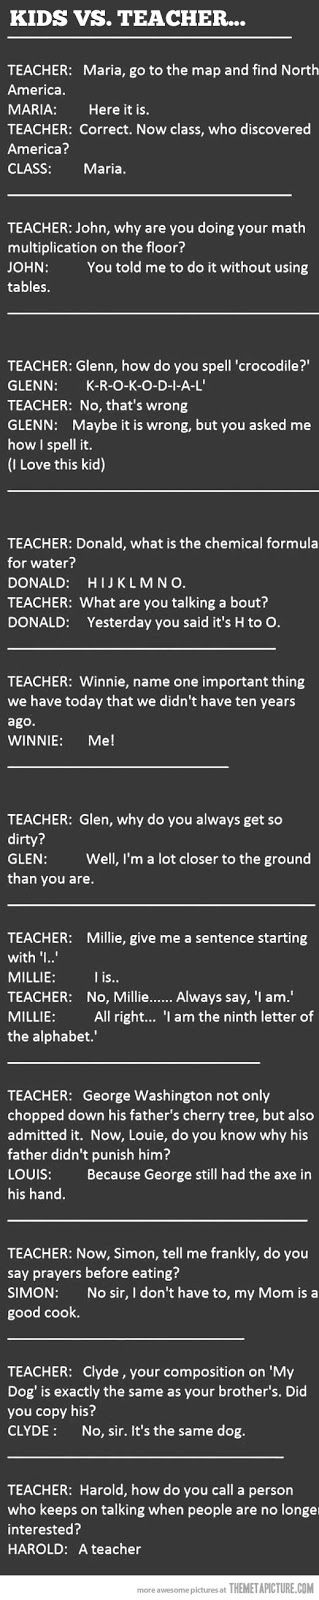 Just for humor... teacher and student conversations